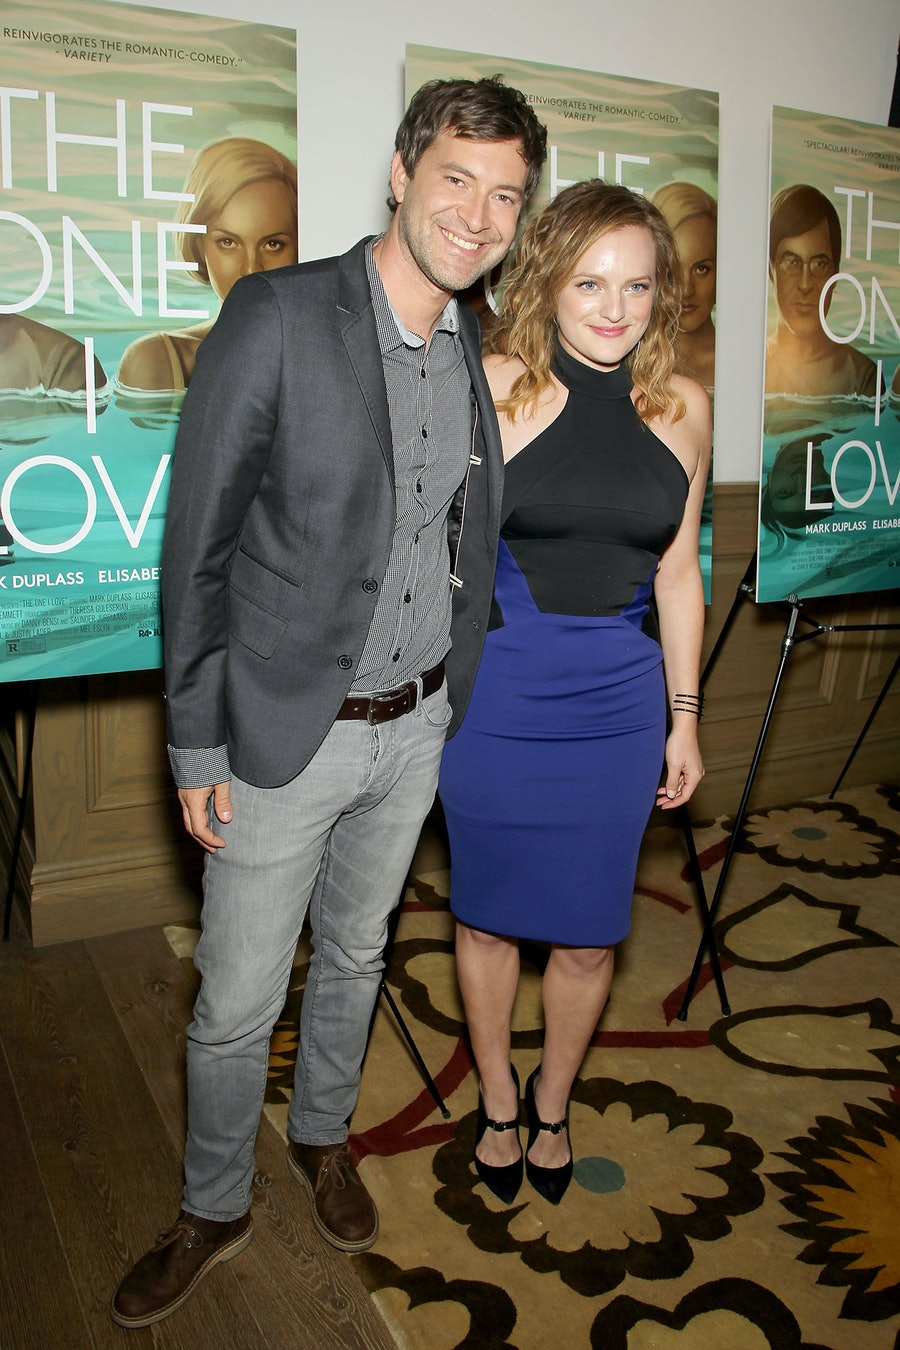 Mark Duplass and Elisabeth Moss